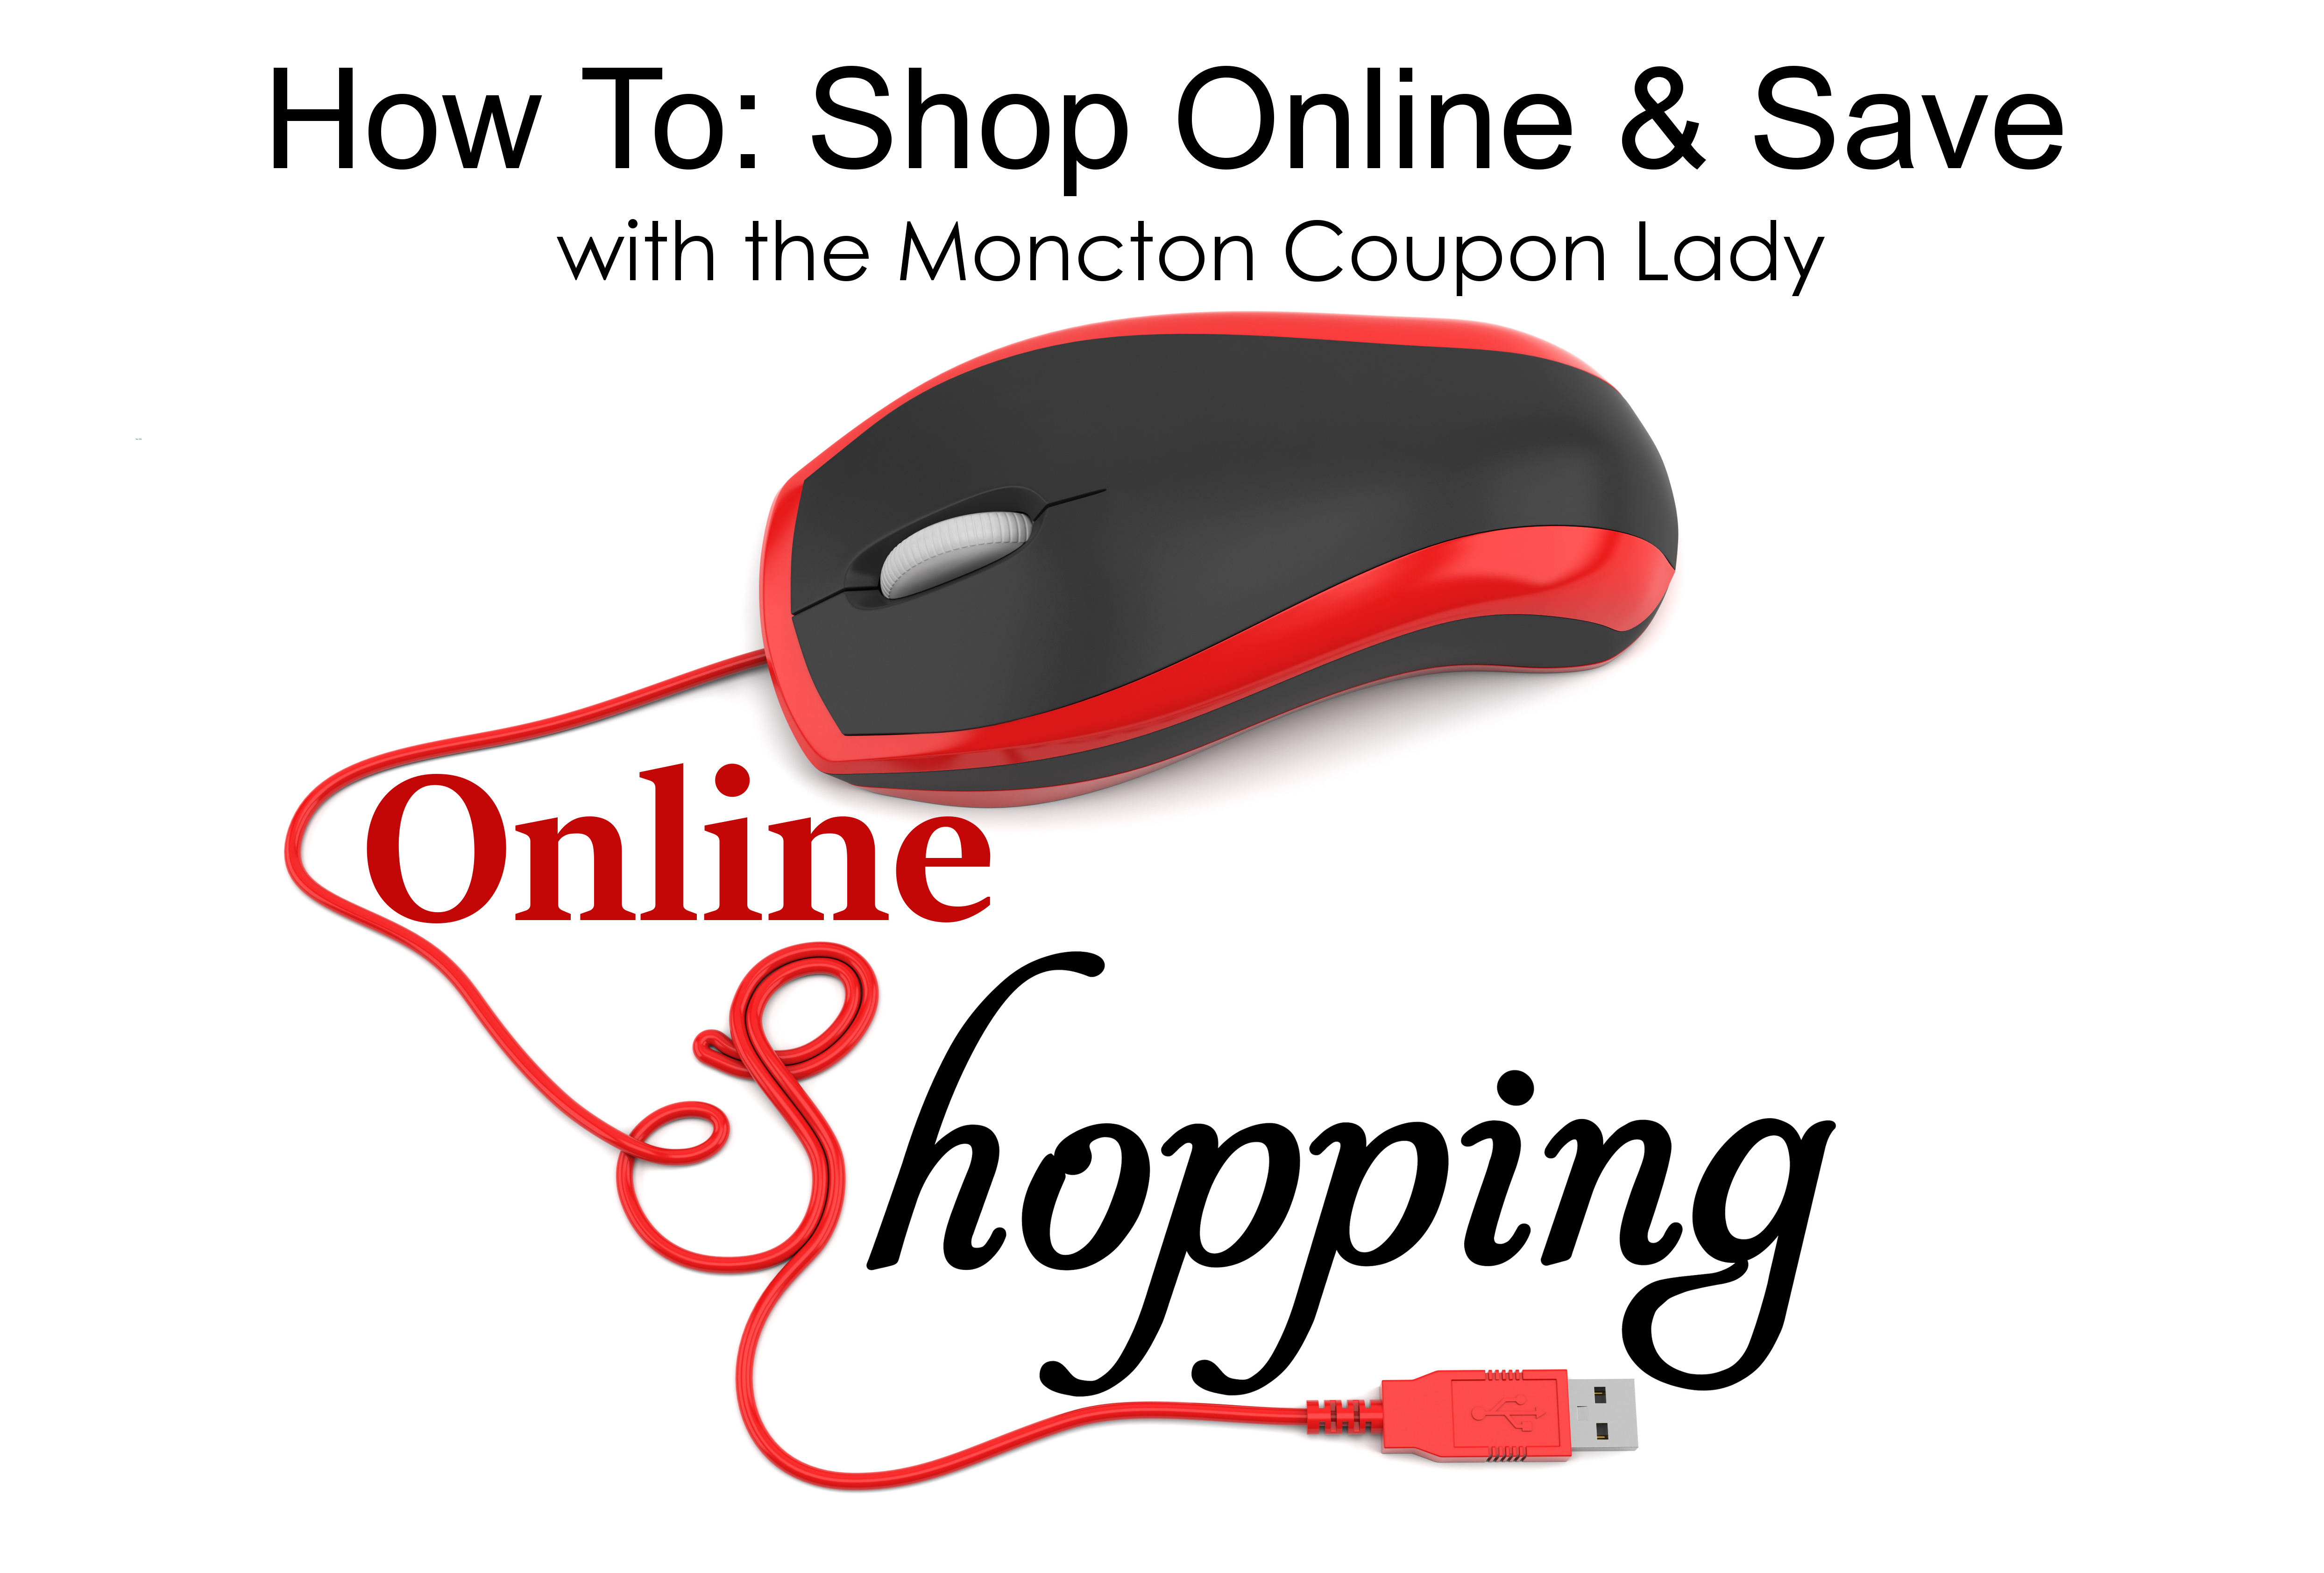 How To: Shop Online & Save